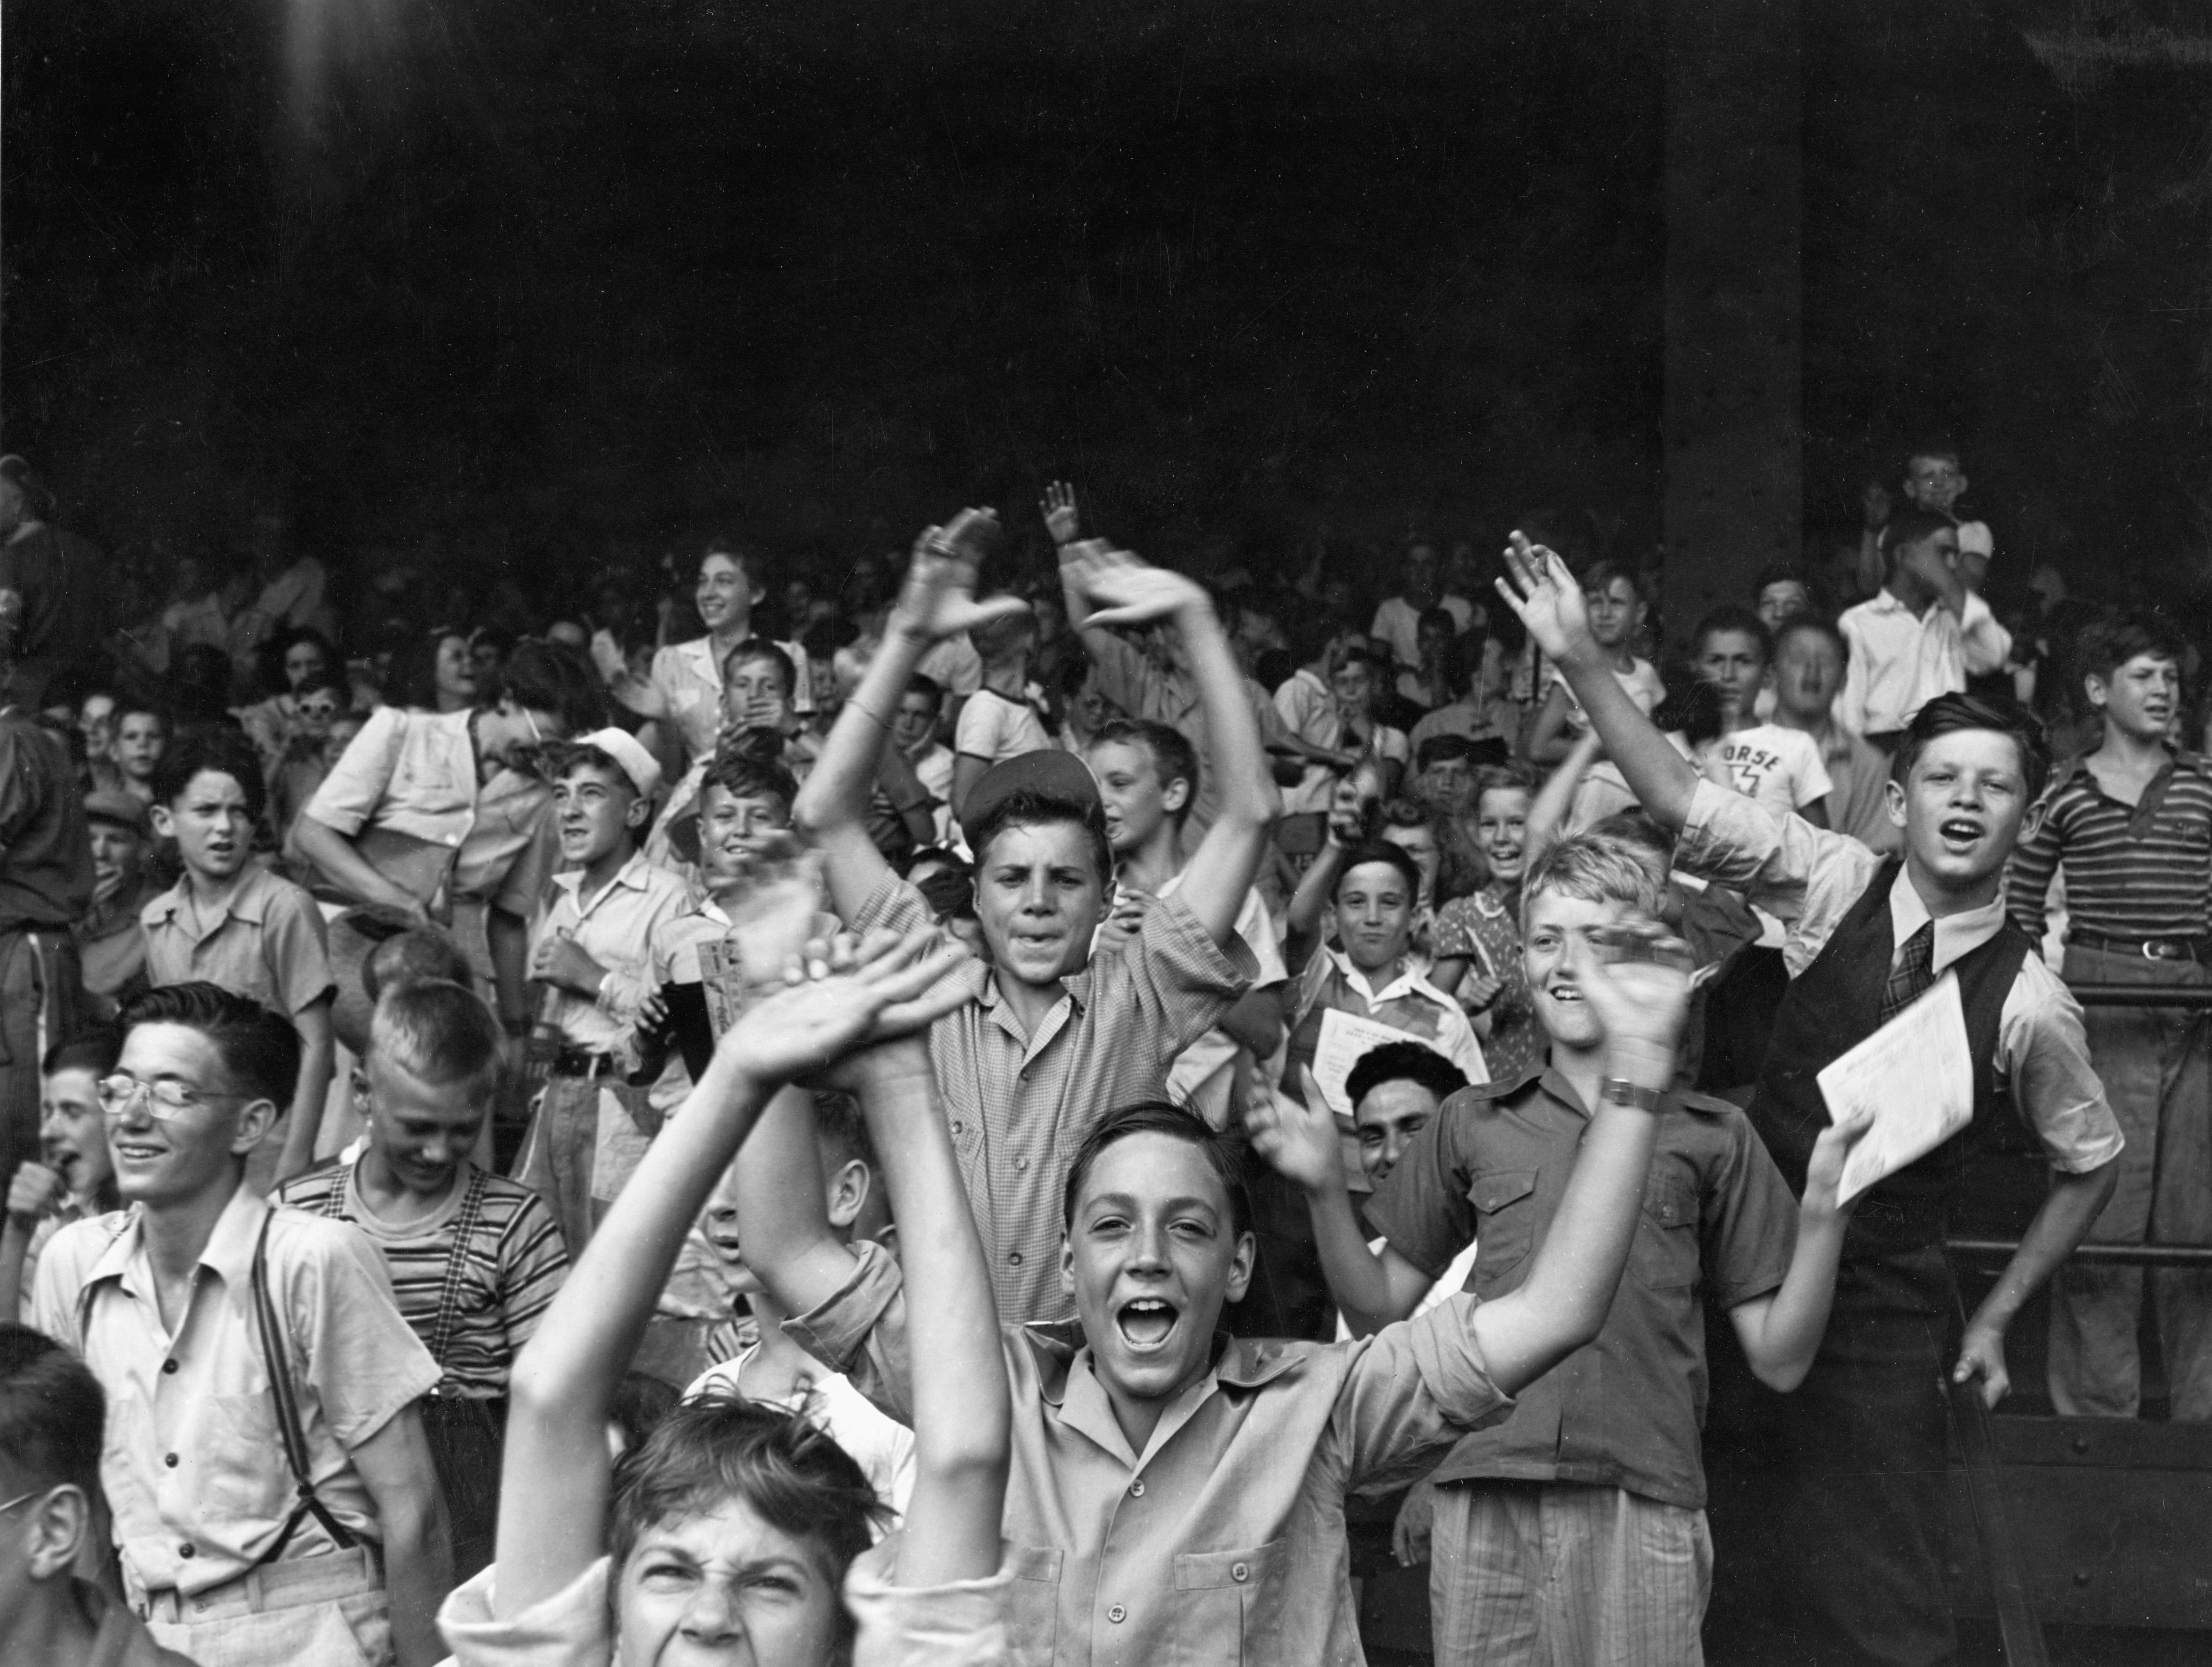 Kids at a ball game at Briggs Stadium in 1942.